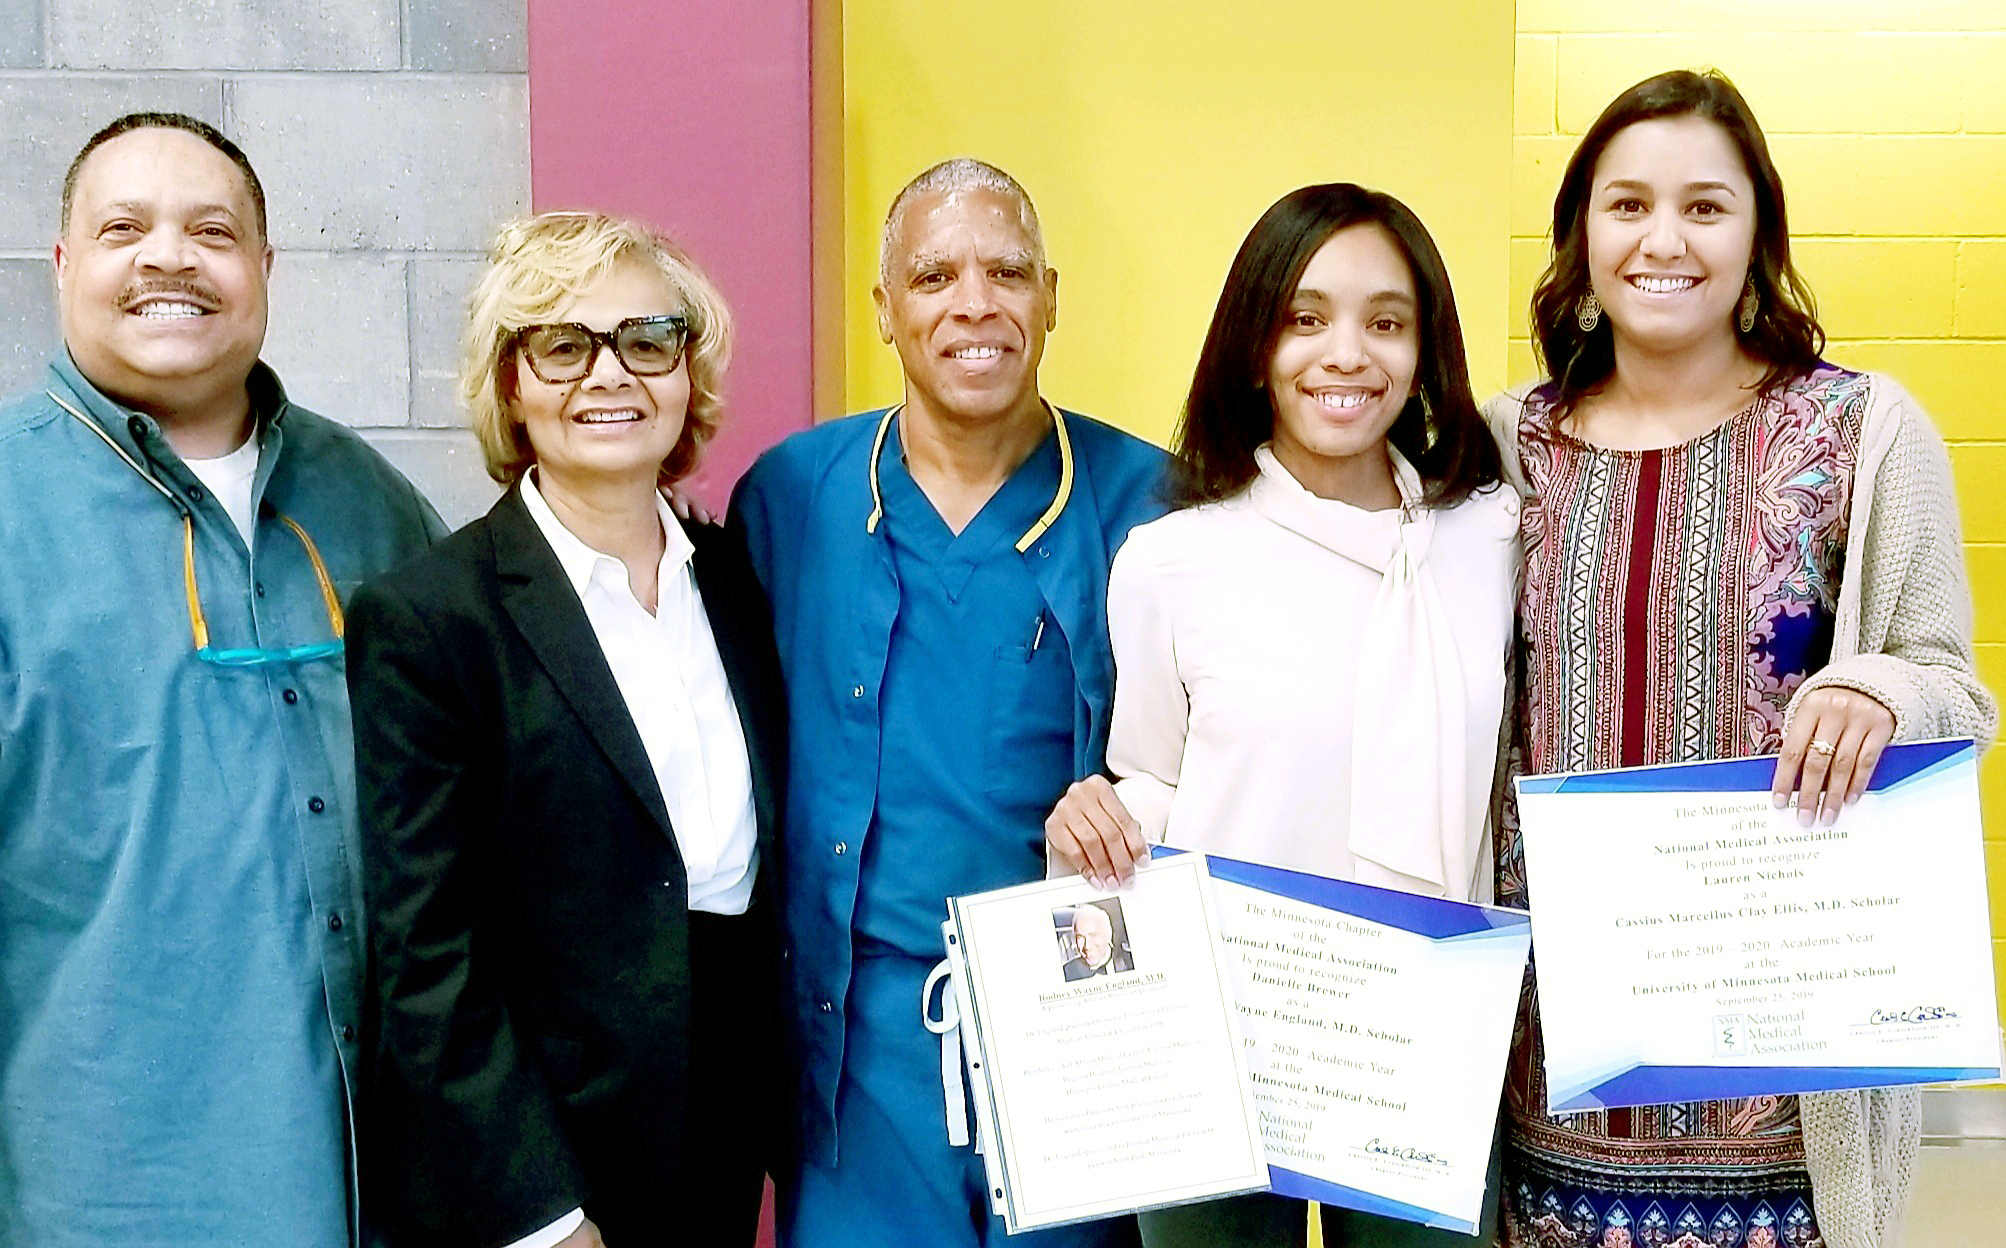 Five people standing together, including two Medical School students with awards.